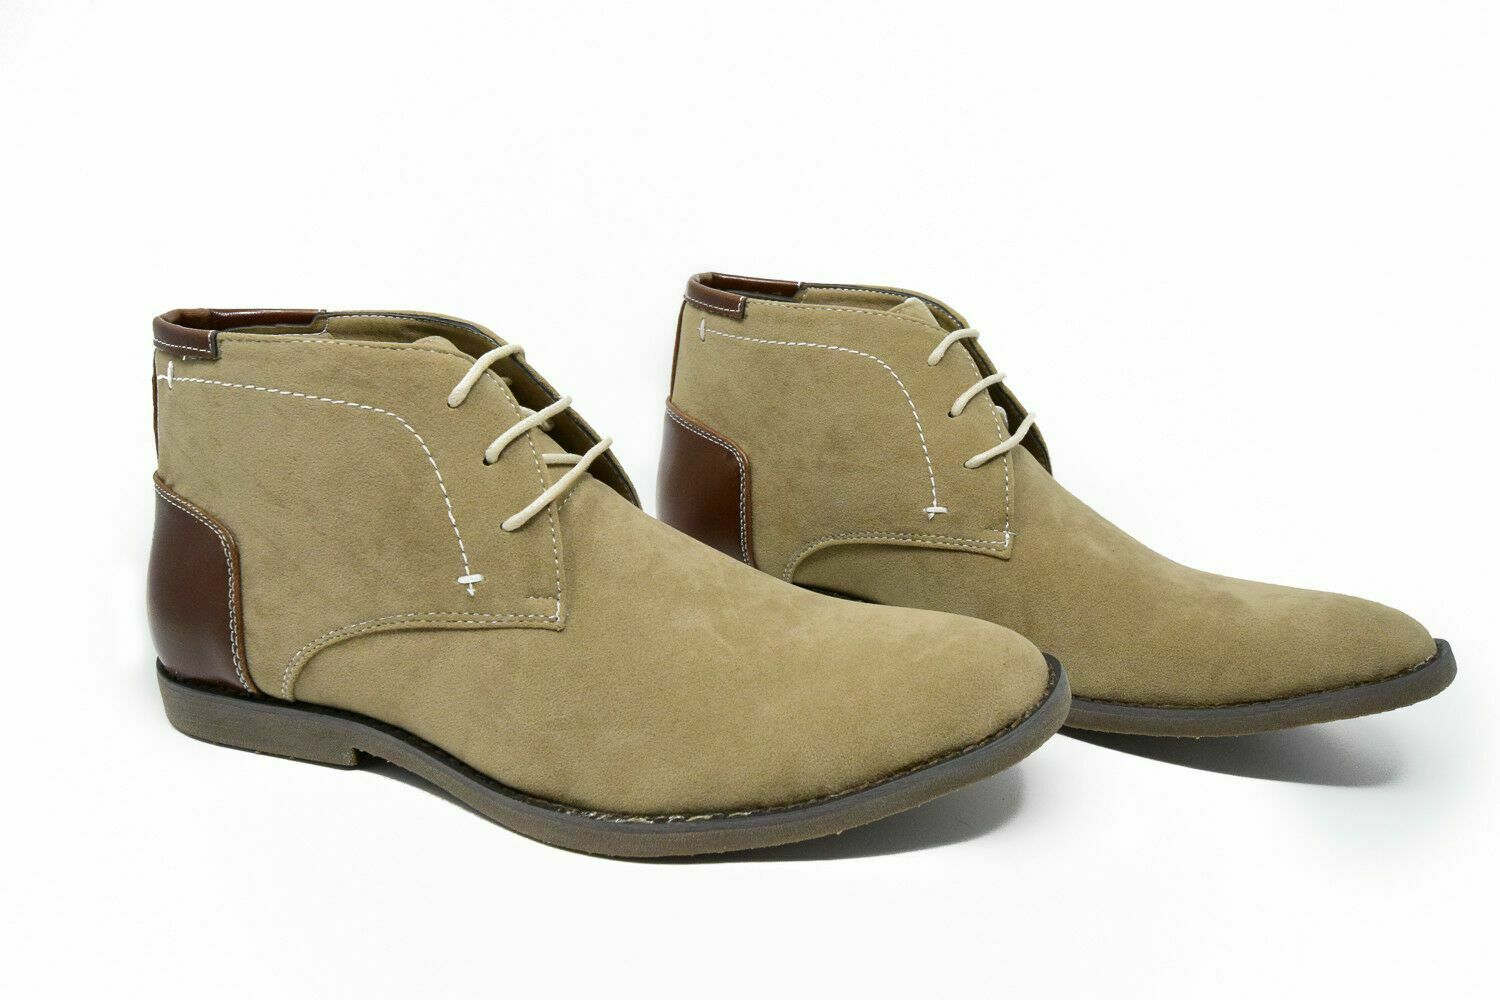 Beige NEW Gino Pheroni Men/'s Chelsea Boots 8.5 Size